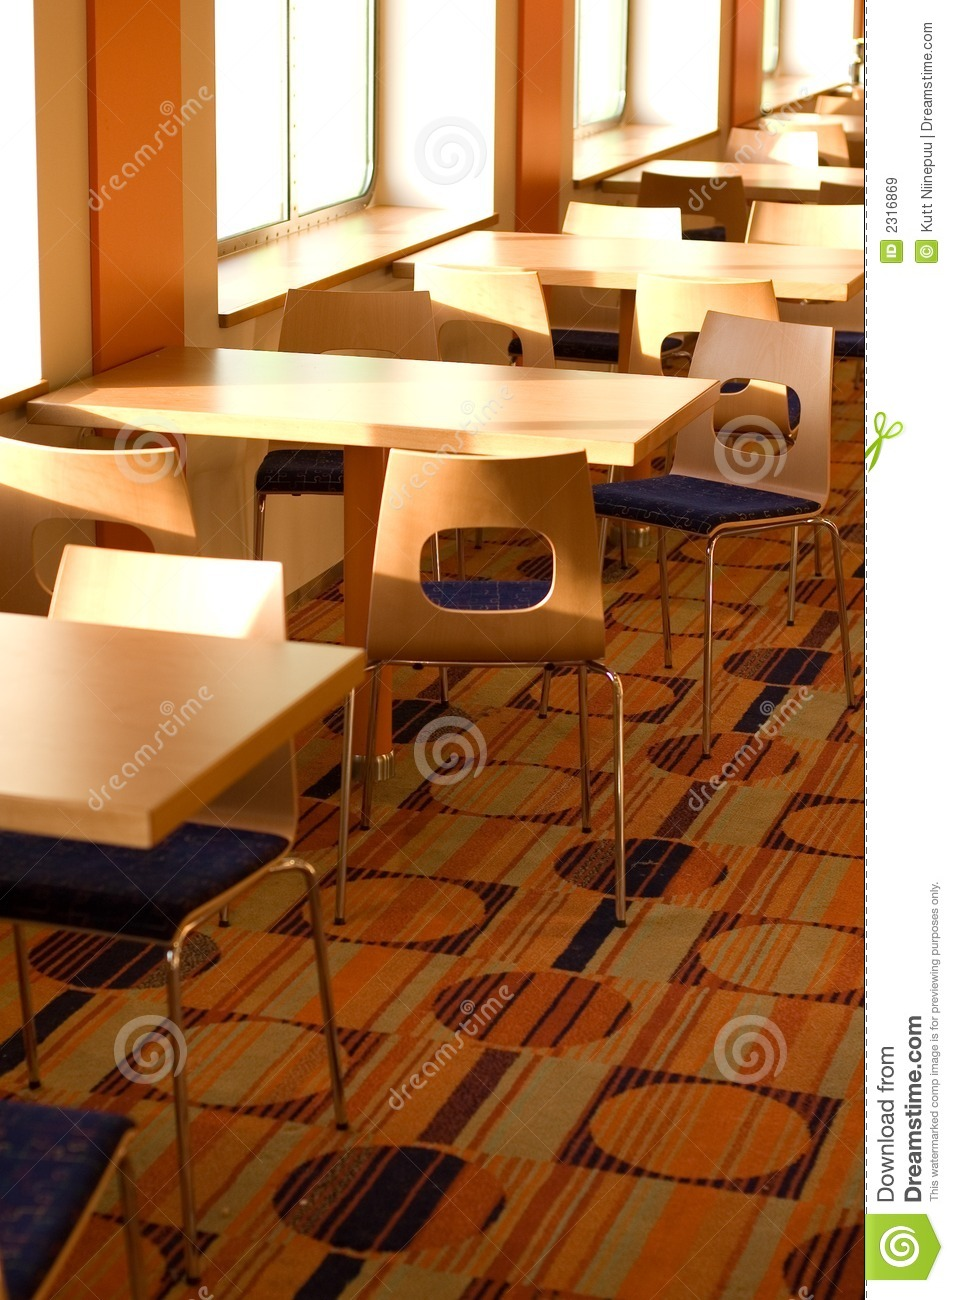 Cafe Table And Chairs Stock Image Image Of Interior